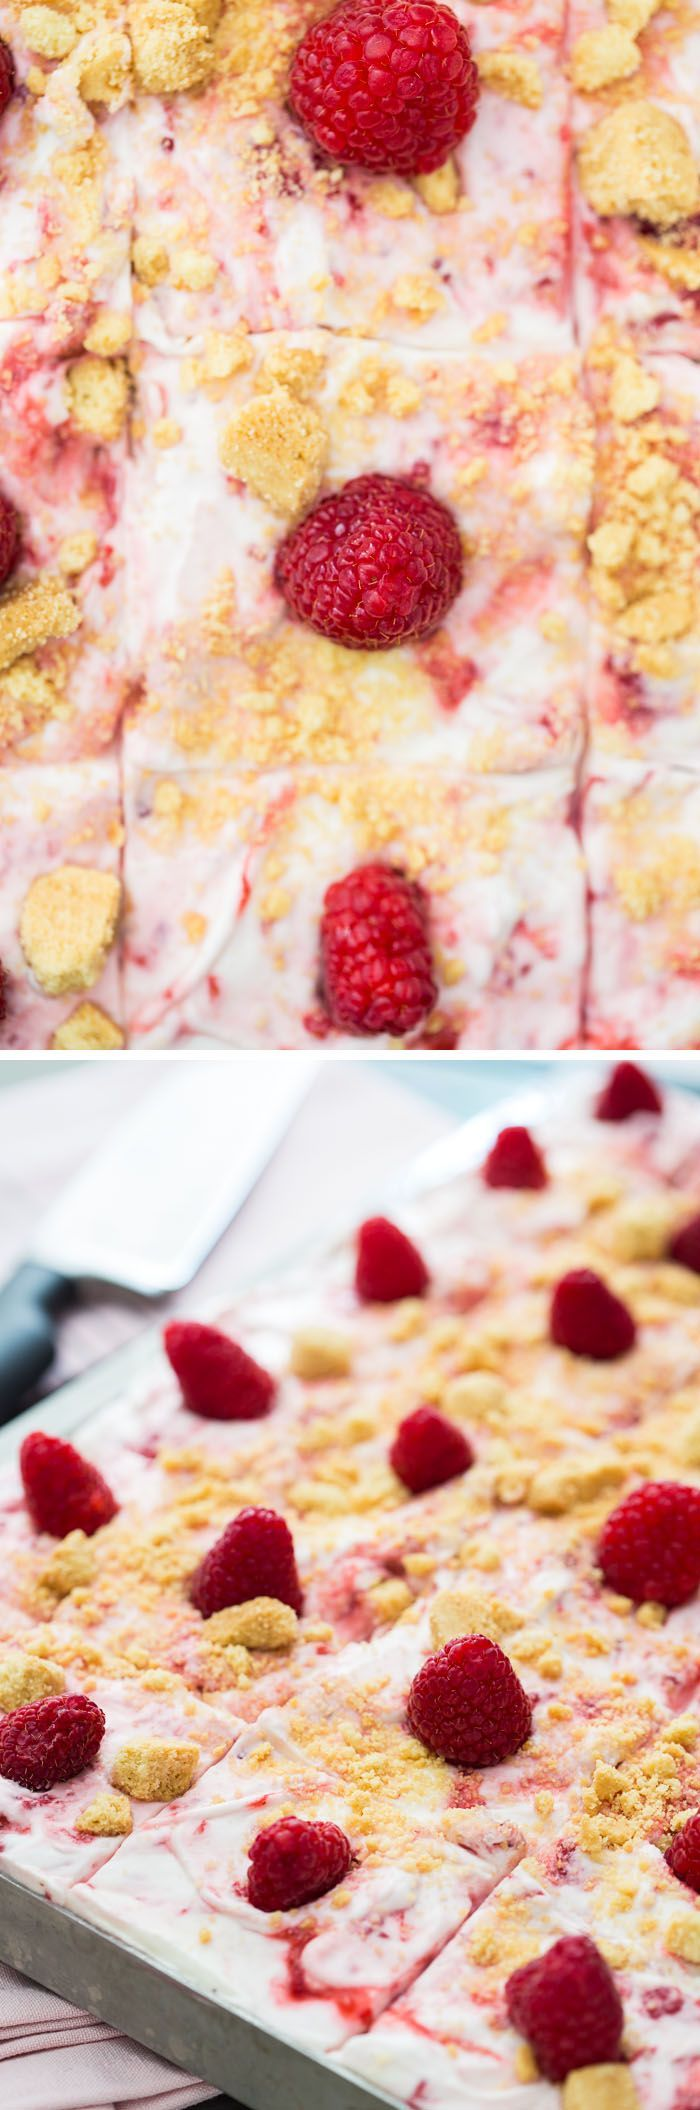 An easy recipe for Raspberry Fool Sheet Cake. Delicious, moist yellow Texas Sheet Cake iced with raspberry fool. Summer crowd pleaser: perfect for potlucks!